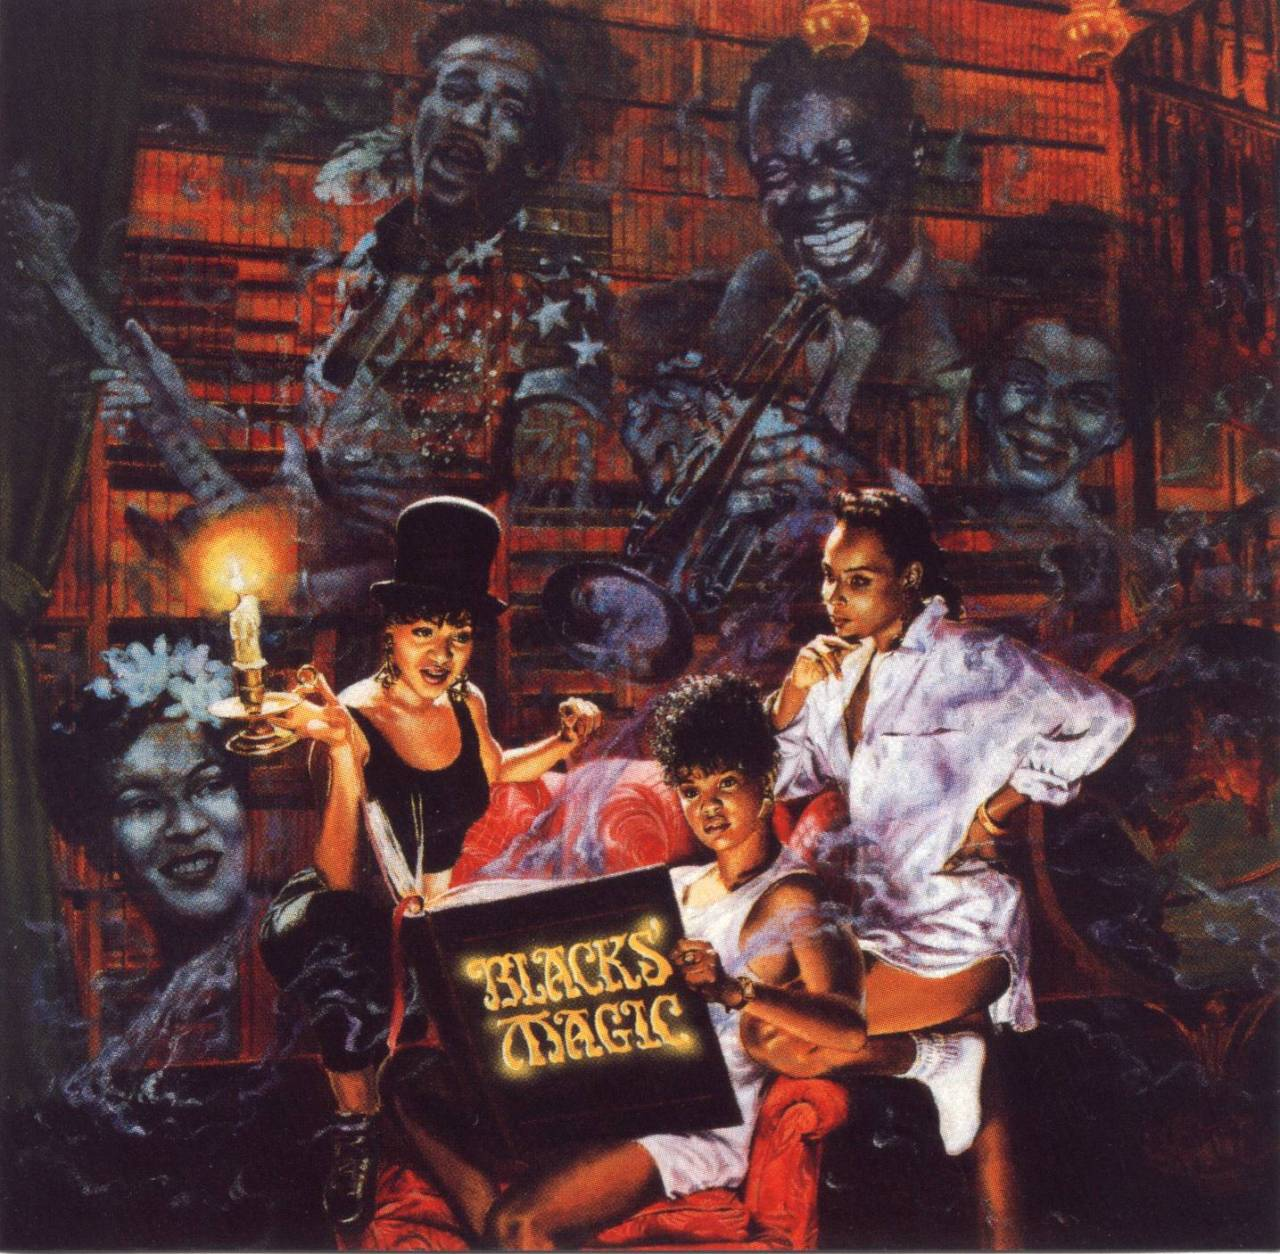 BACK IN THE DAY |3/19/90| Salt-n-Pepa released their 3rd album, Black's Magic, on Next Plateau Records.